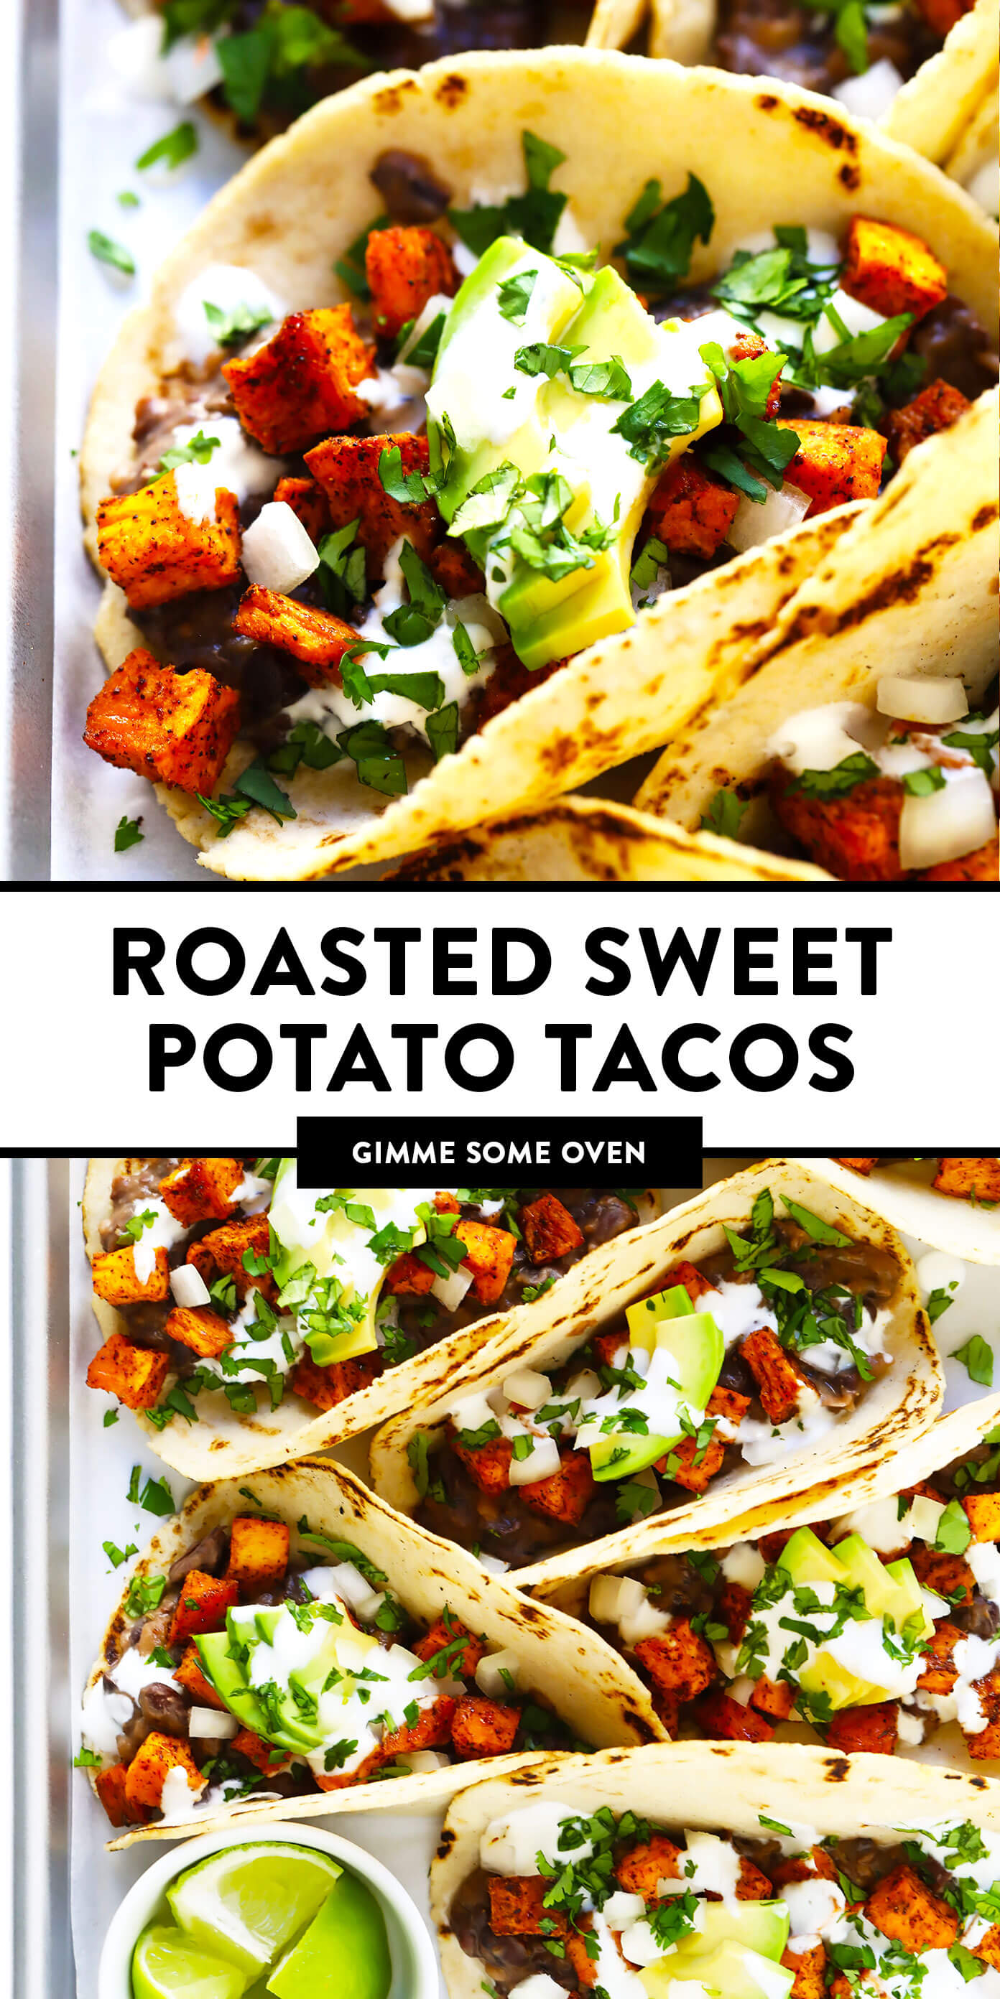 Roasted Sweet Potato Tacos Recipe   Gimme Some Oven